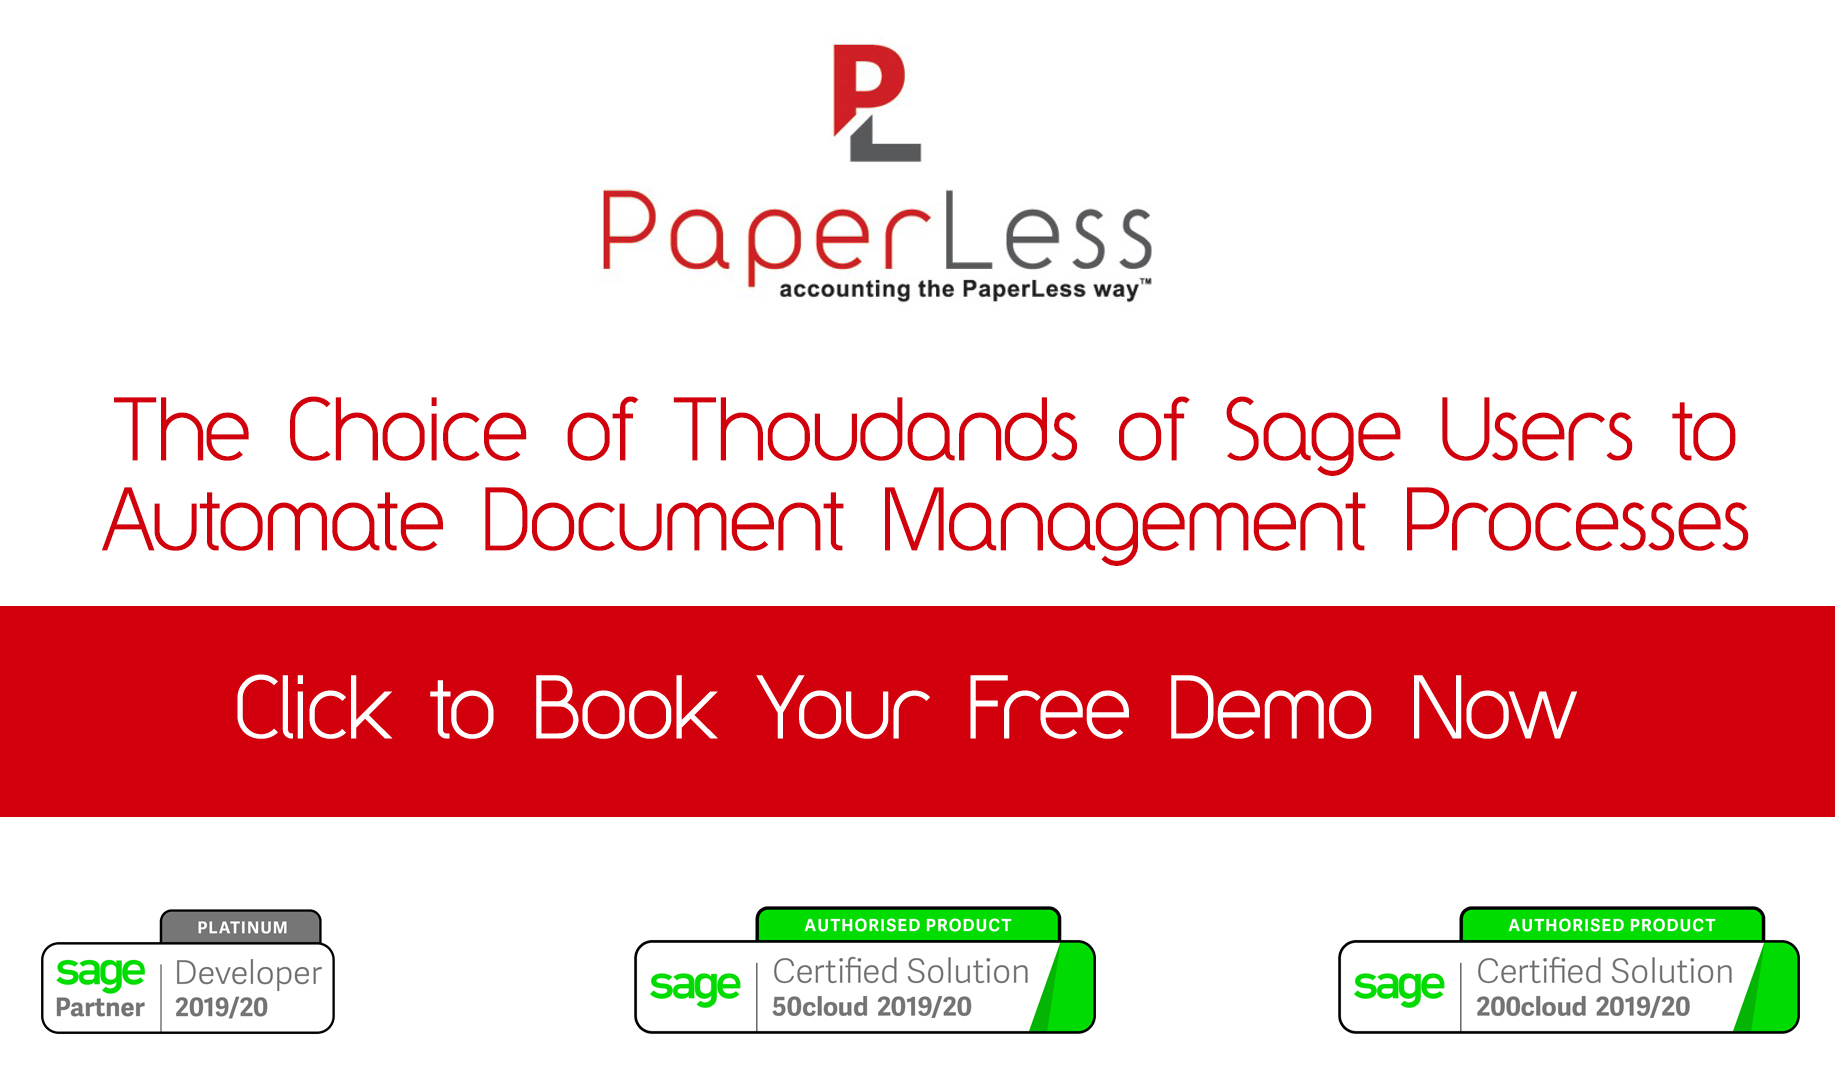 Click here to Book Your Free Demo Now